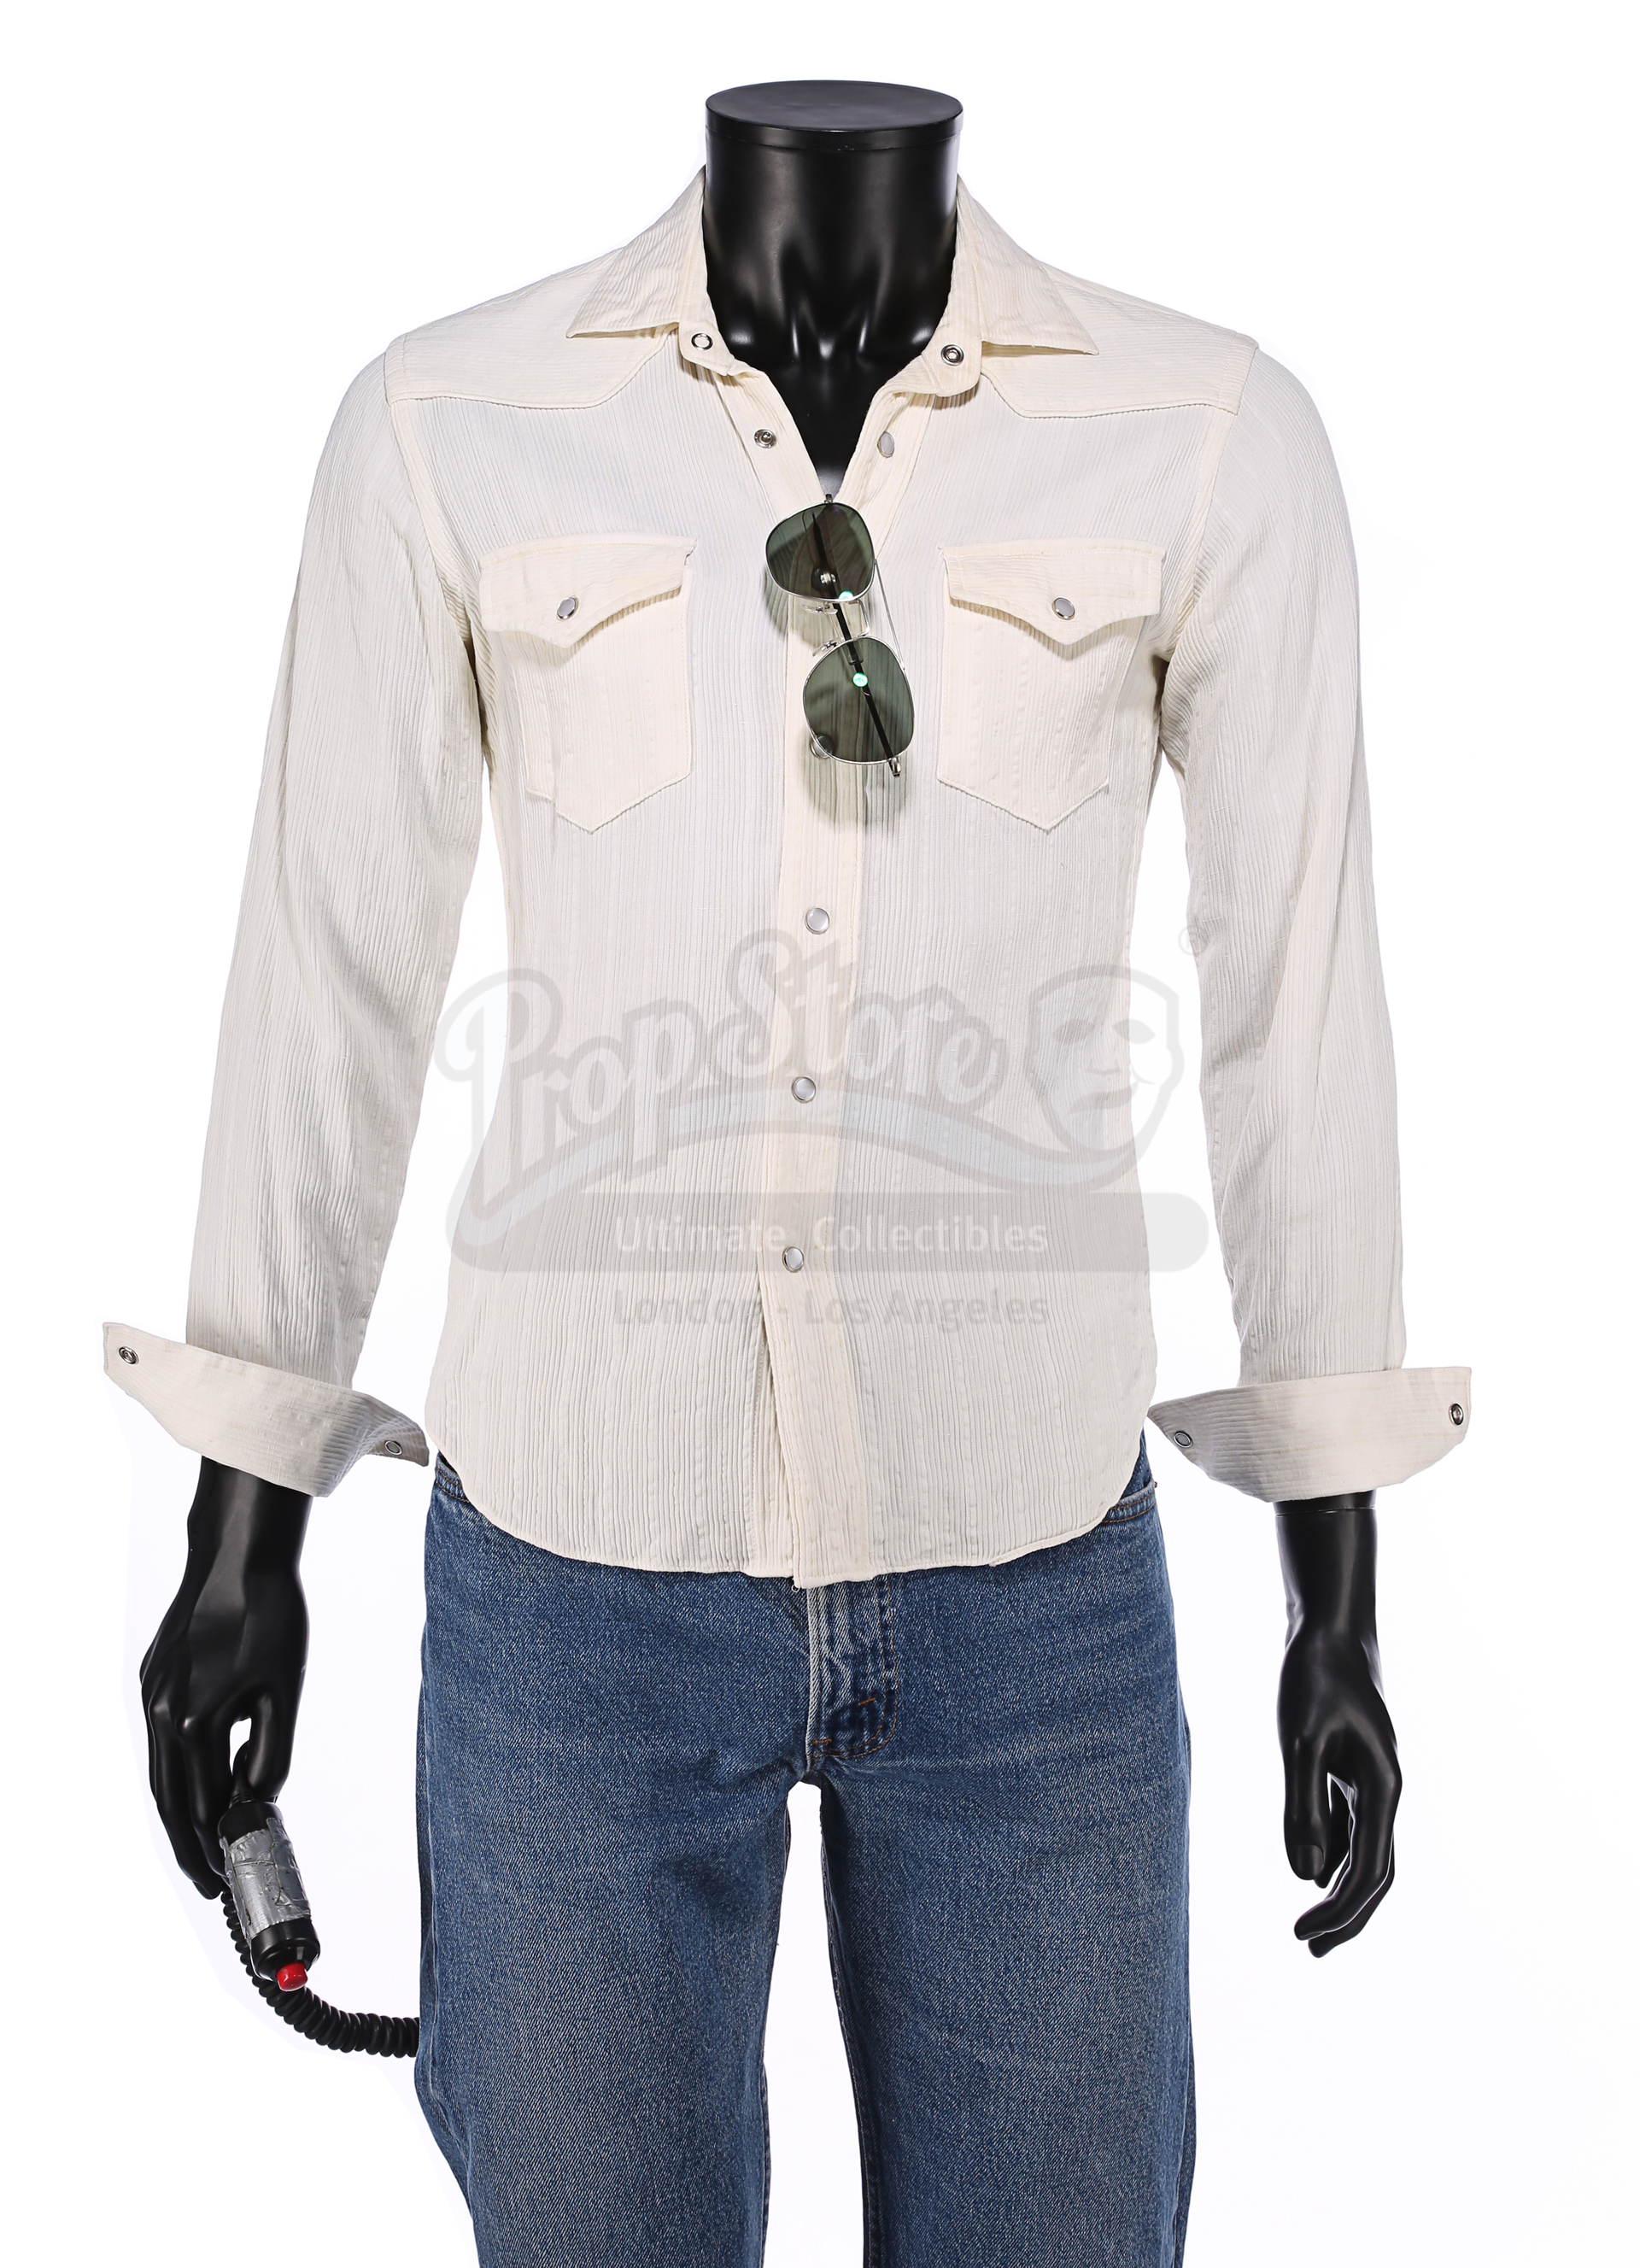 AMERICAN MADE (2017) - Barry Seal's (Tom Cruise) Costume - Image 2 of 23